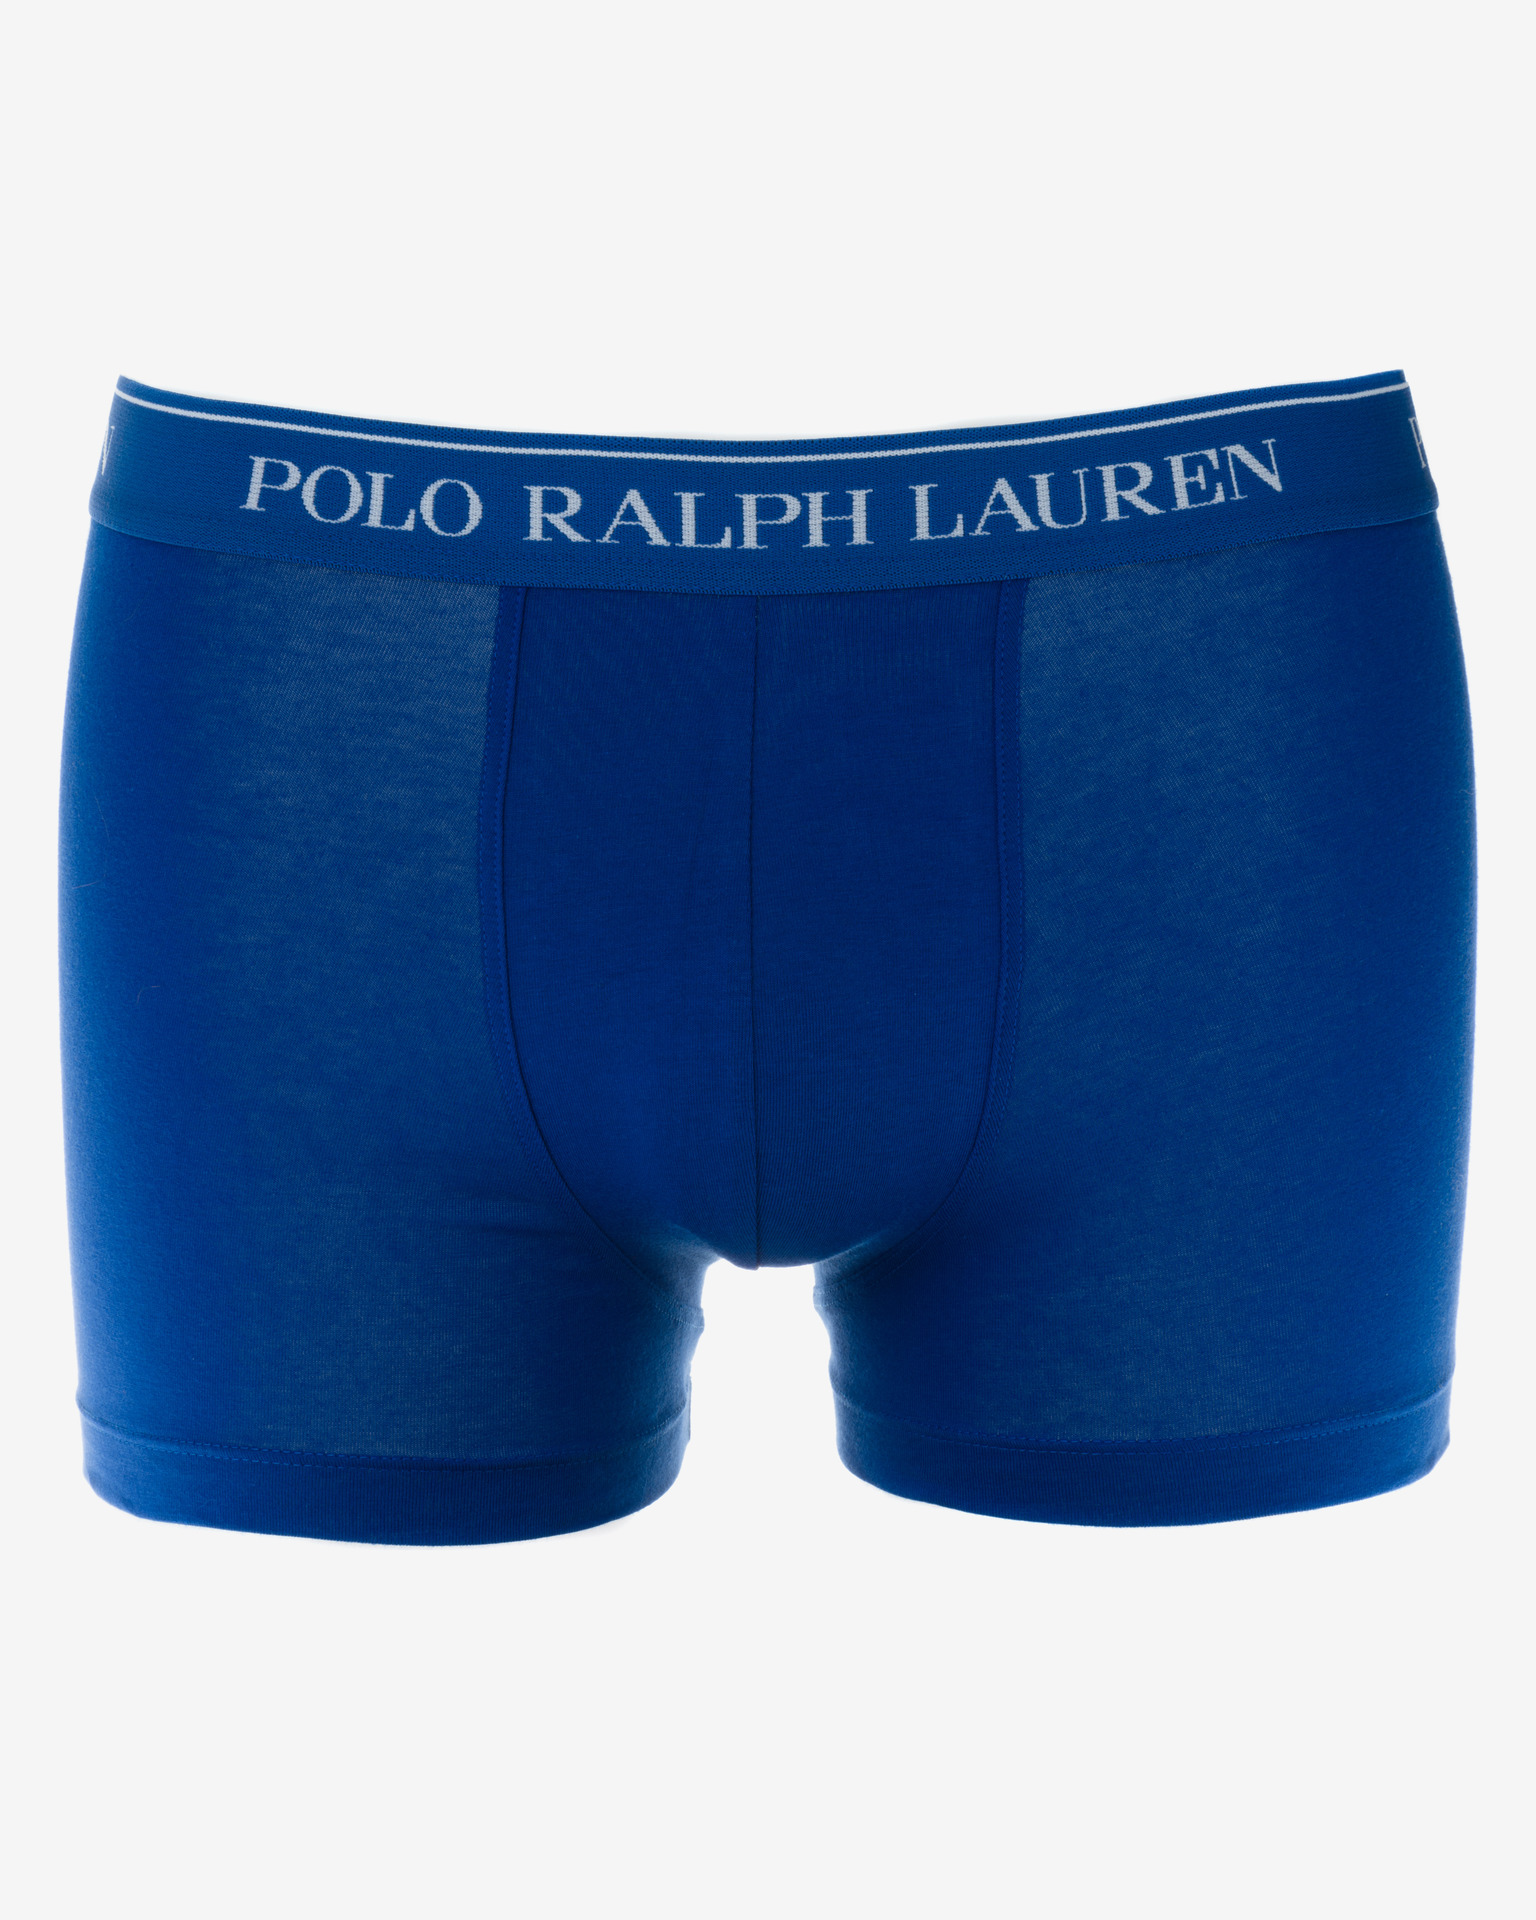 ralph lauren boxers 2 piece. Black Bedroom Furniture Sets. Home Design Ideas